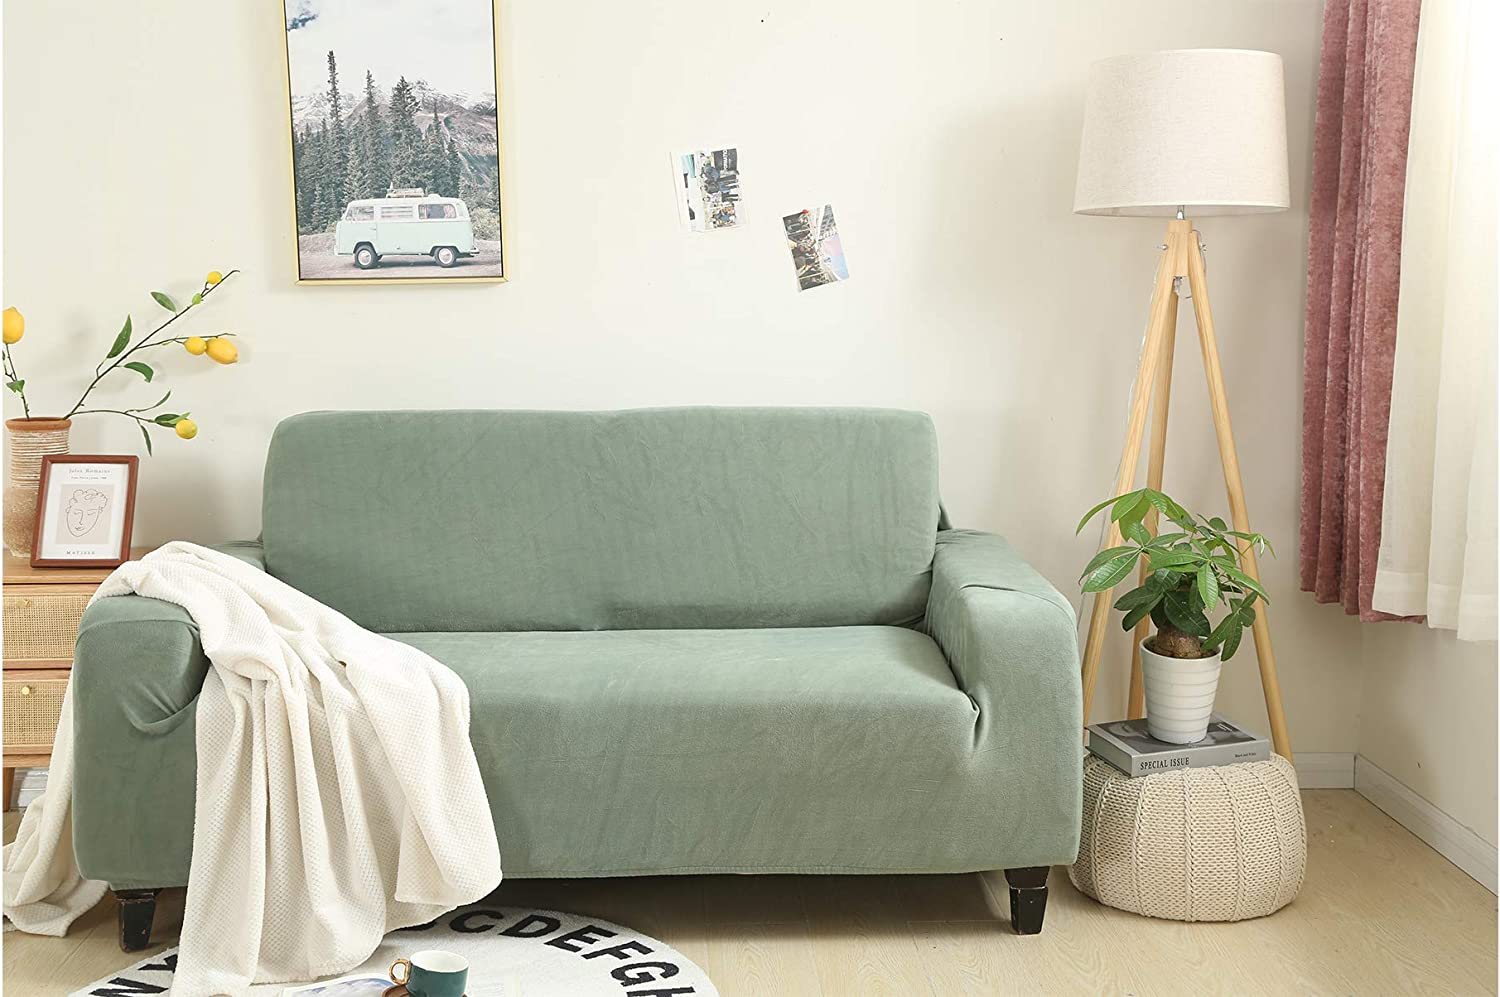 OFFicial shop Kindred Home Couch Cover Sofa Loveseat Slipcover Max 79% OFF Mint Stretchy